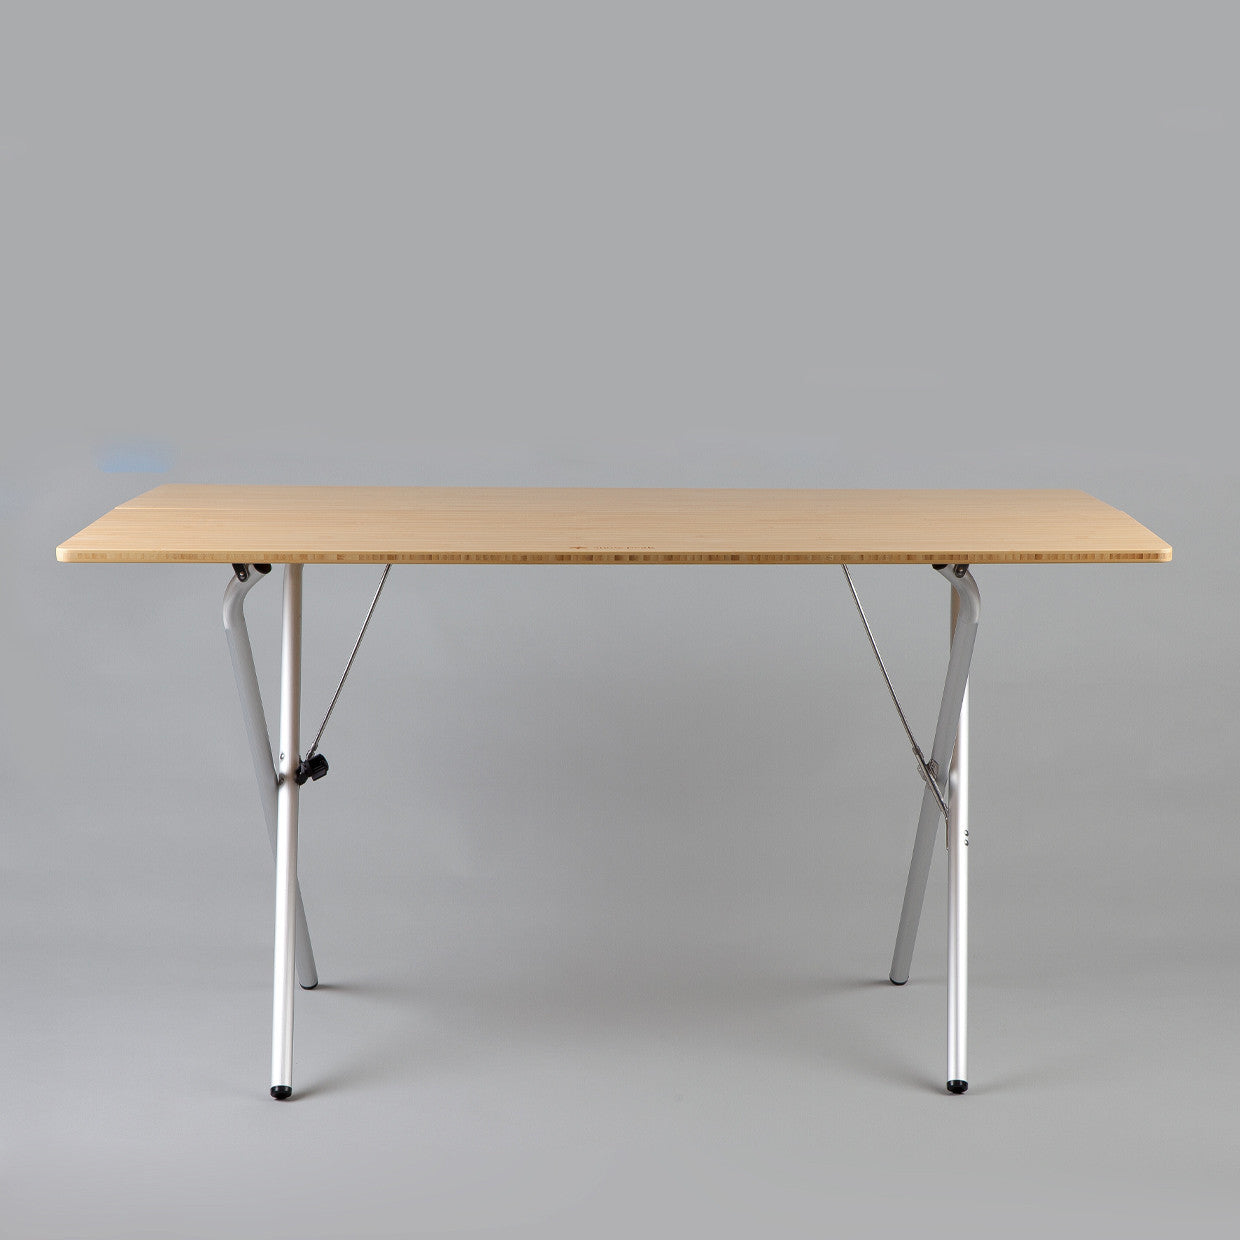 Snow Peak Single Action Table Long